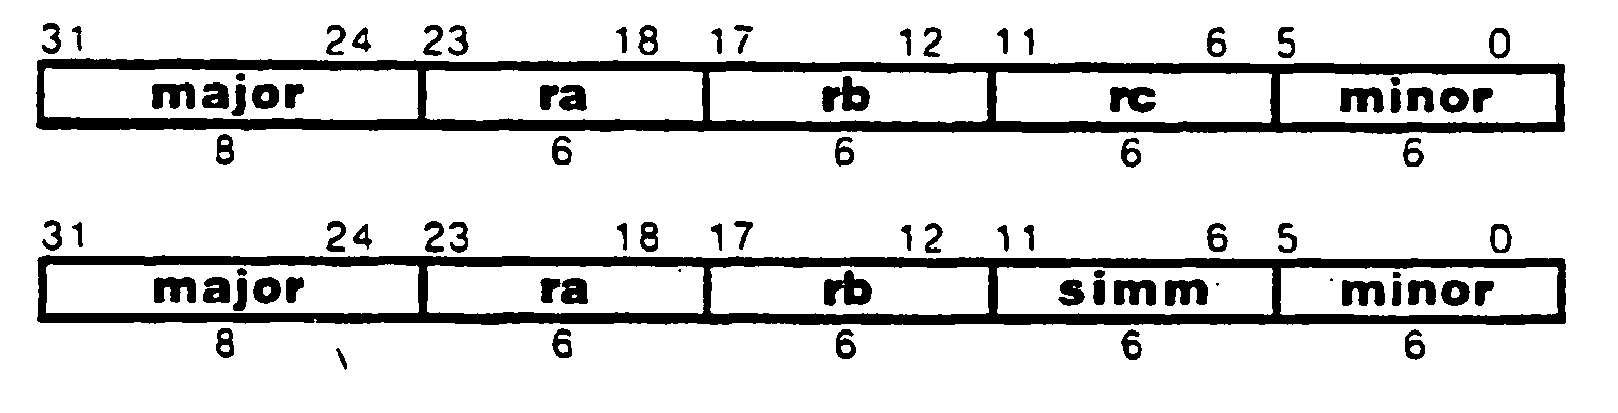 EP1879103B1 - Wireless device including a general purpose